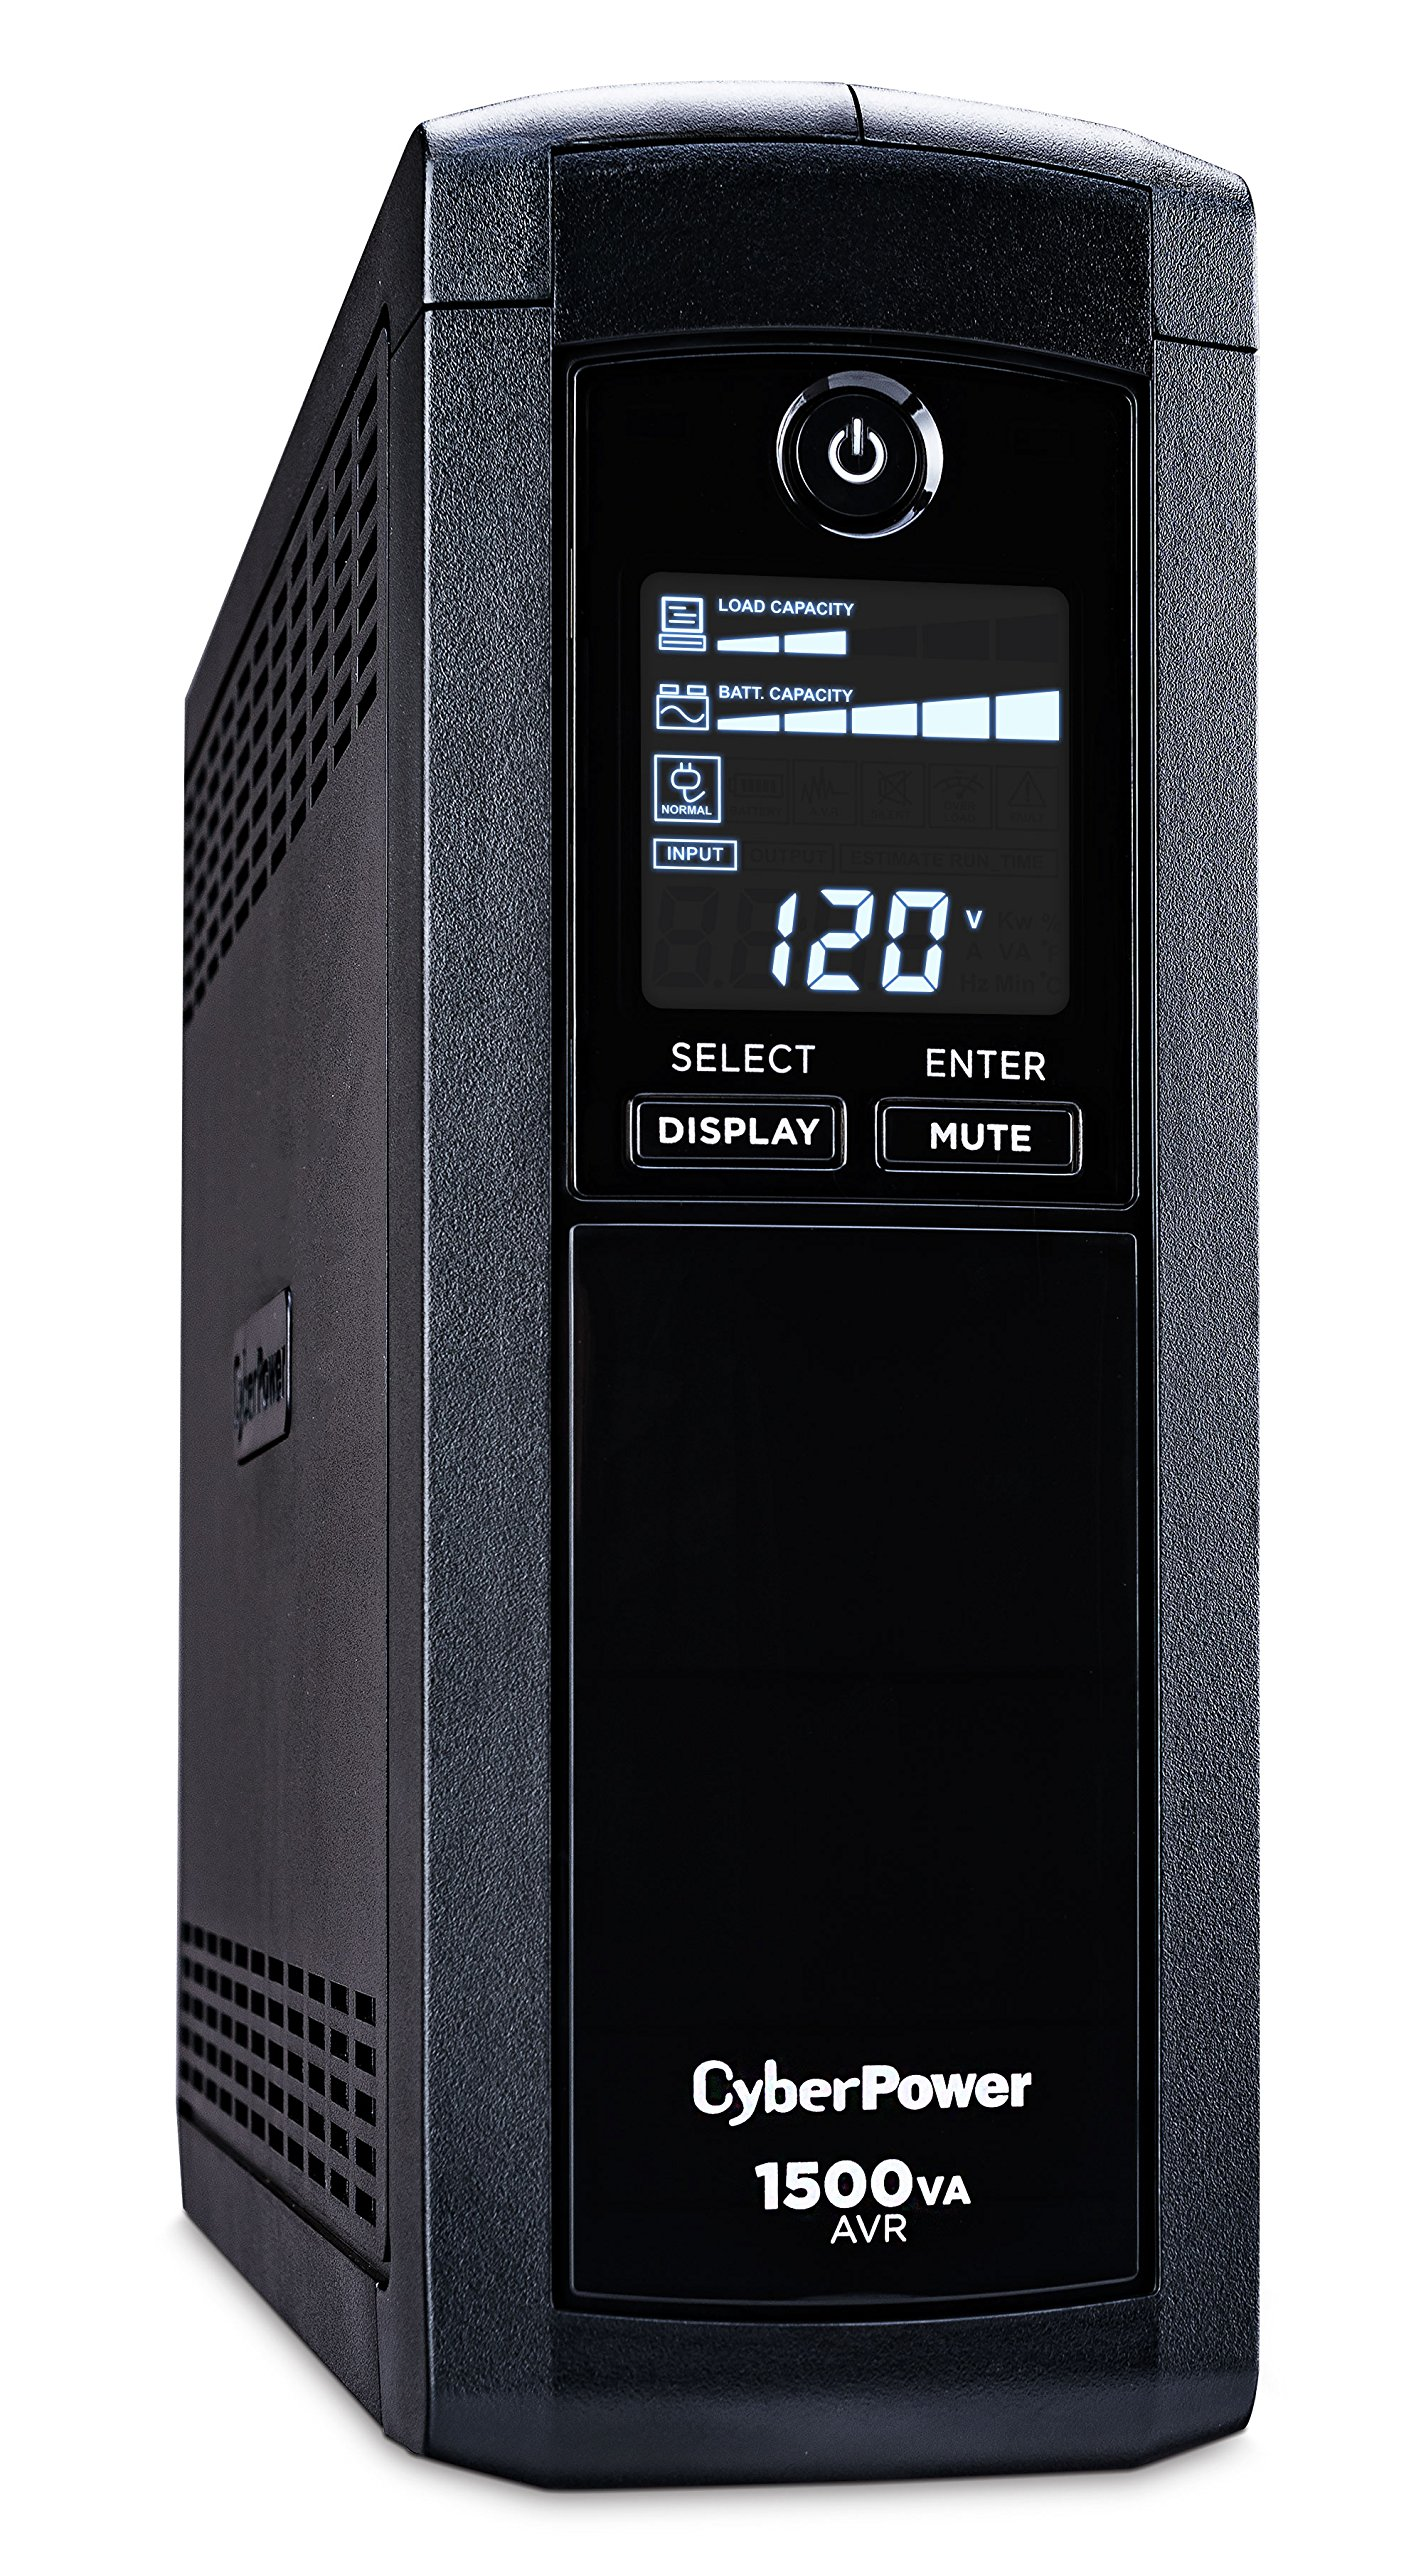 CyberPower CP150AVRLCD Intelligent LCD UPS System, 1500VA/900W, 12 Outlets, AVR, Mini-Tower